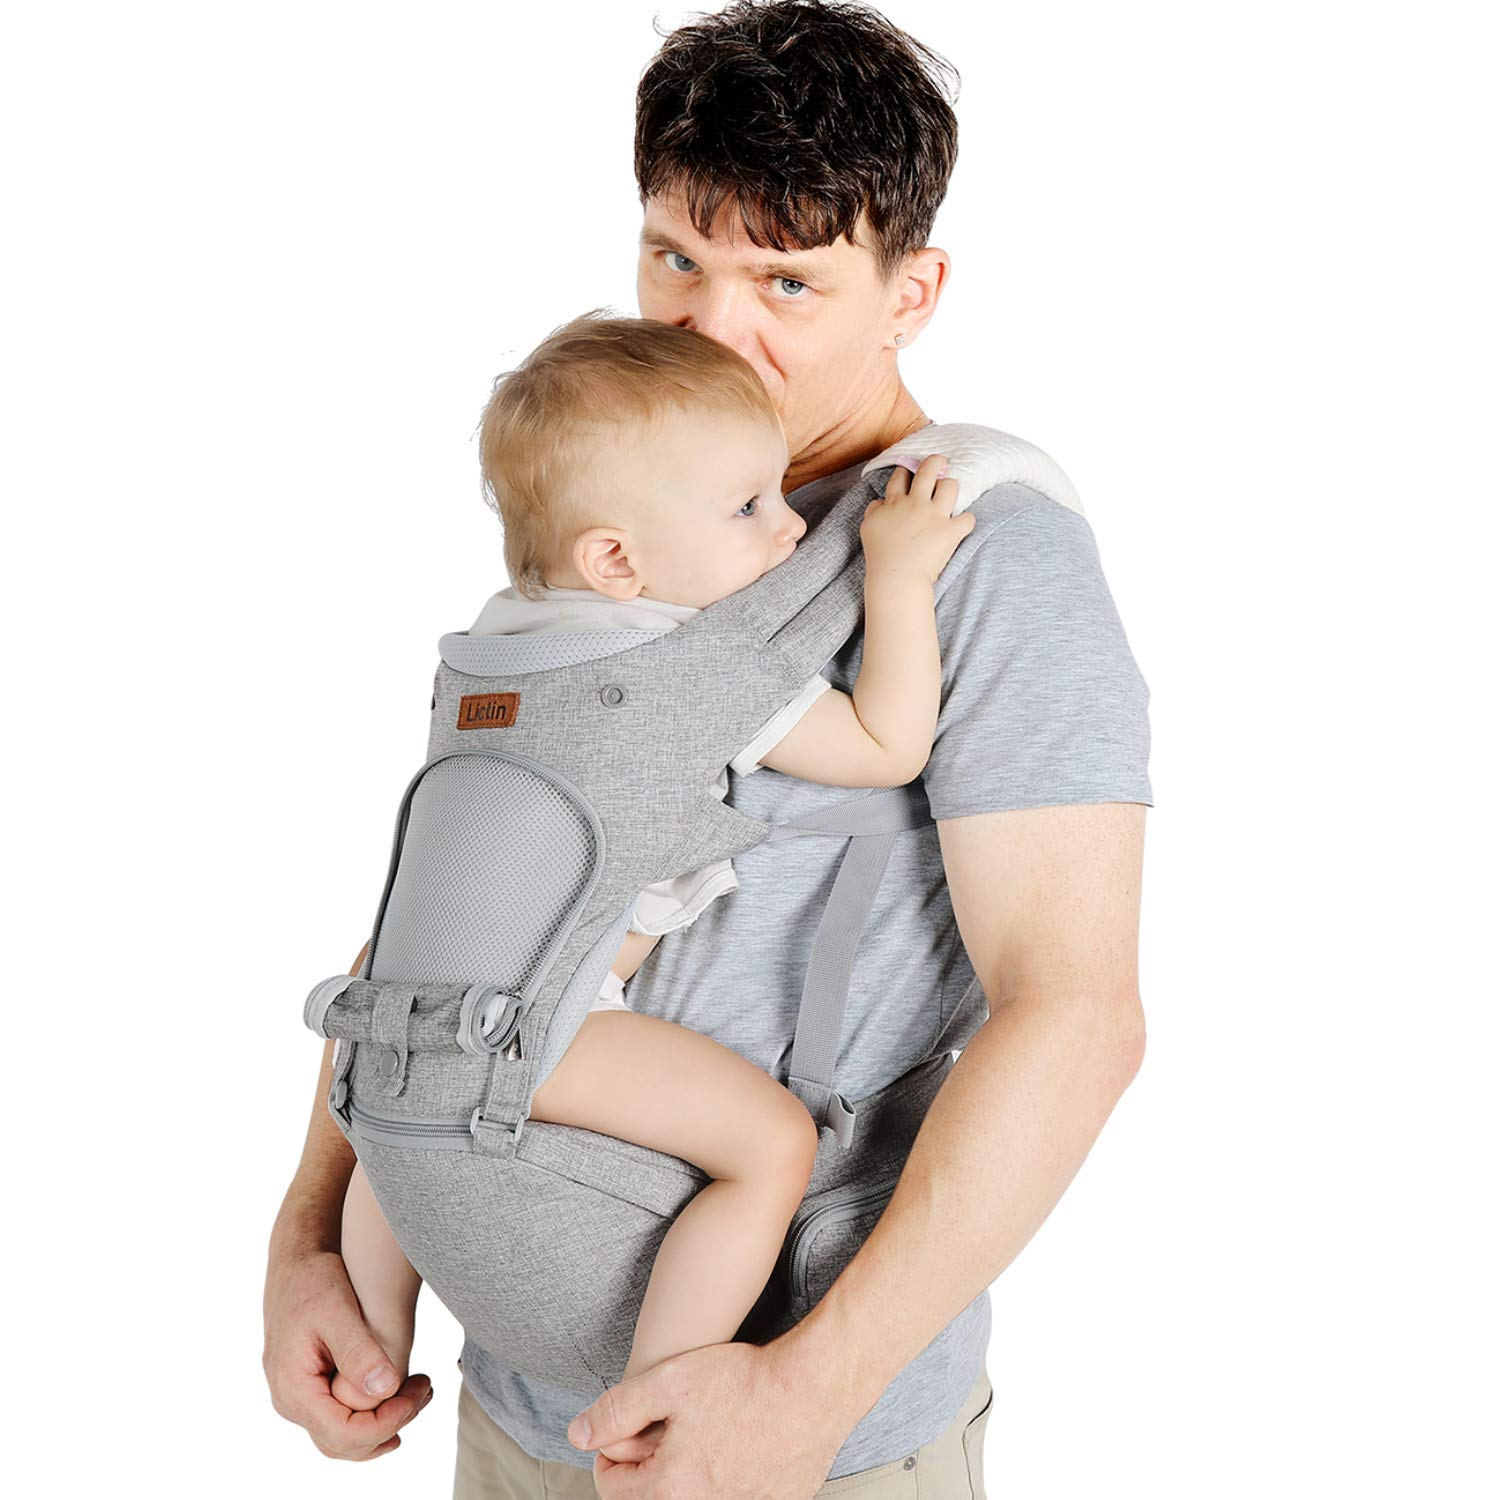 Lictin Baby Carrier 6-in-1 Ergonomic Backpack Carry for Infants from 3.5KG to 20KG , 1 Pacifier Chain, with ASTM Certificated Tummy Carrier for Hiking, Shopping